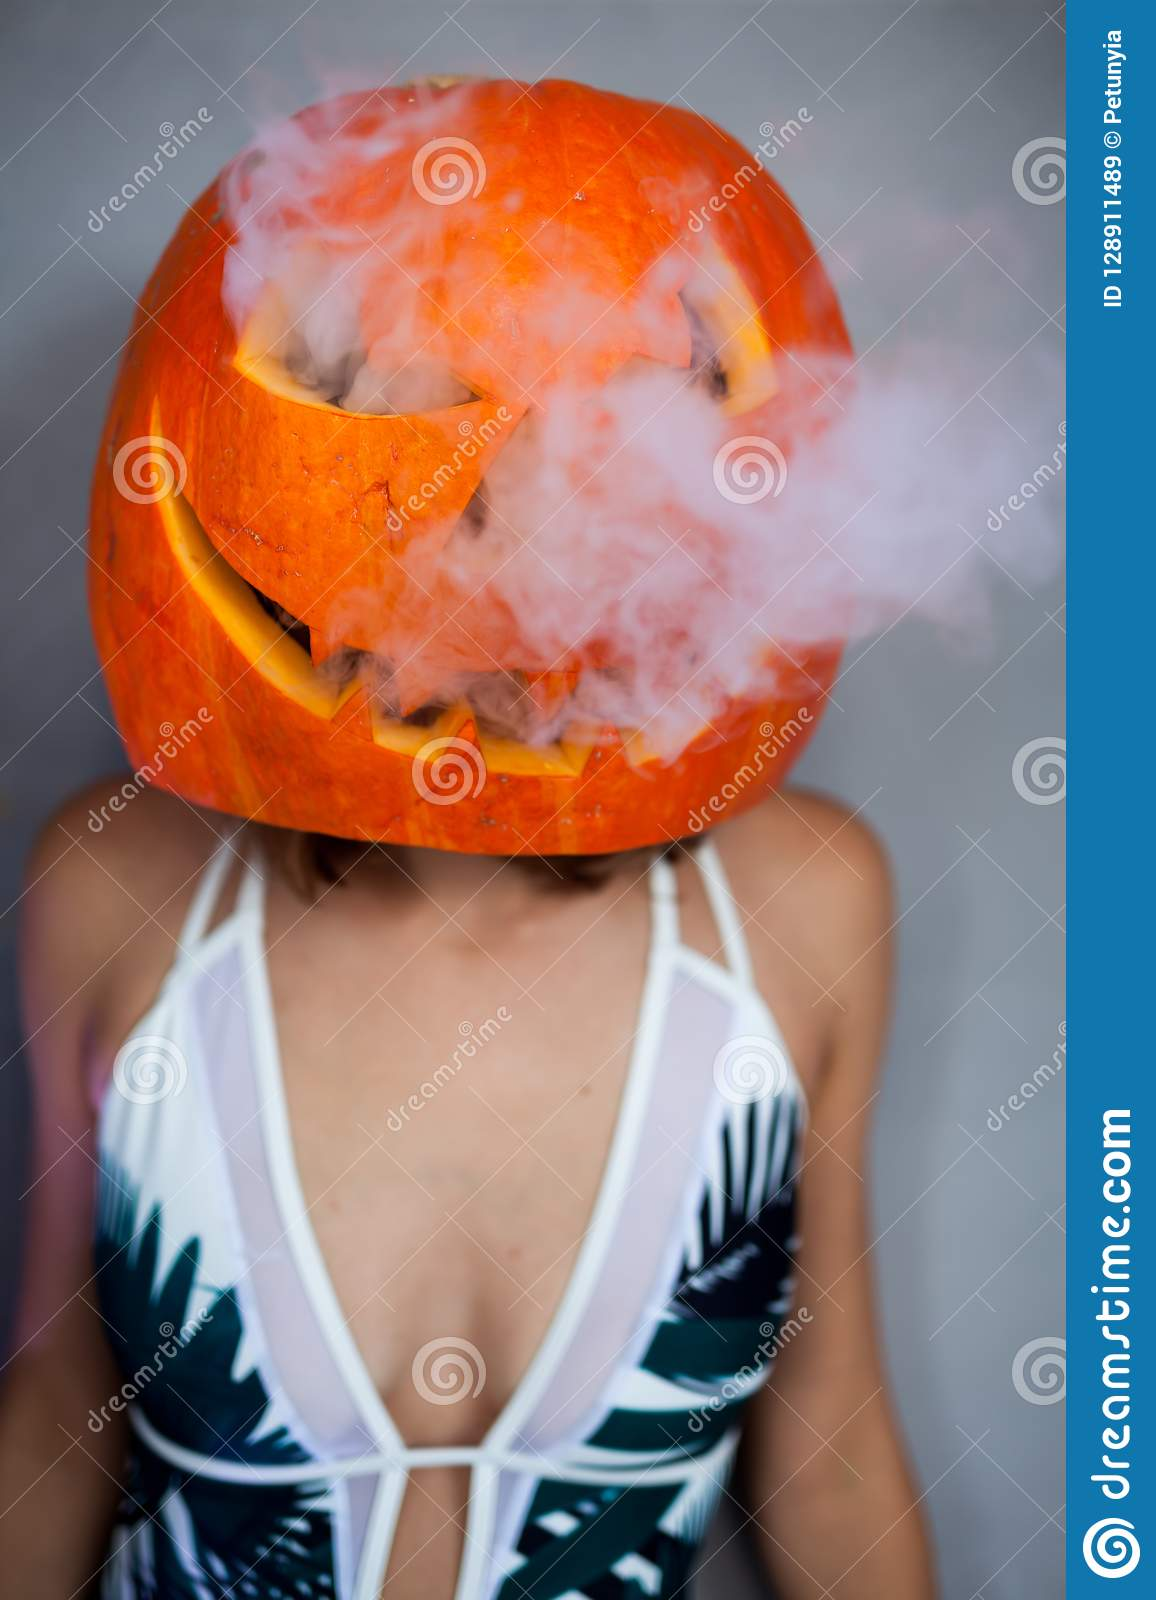 woman with carved pumpkin on her head for Halloween